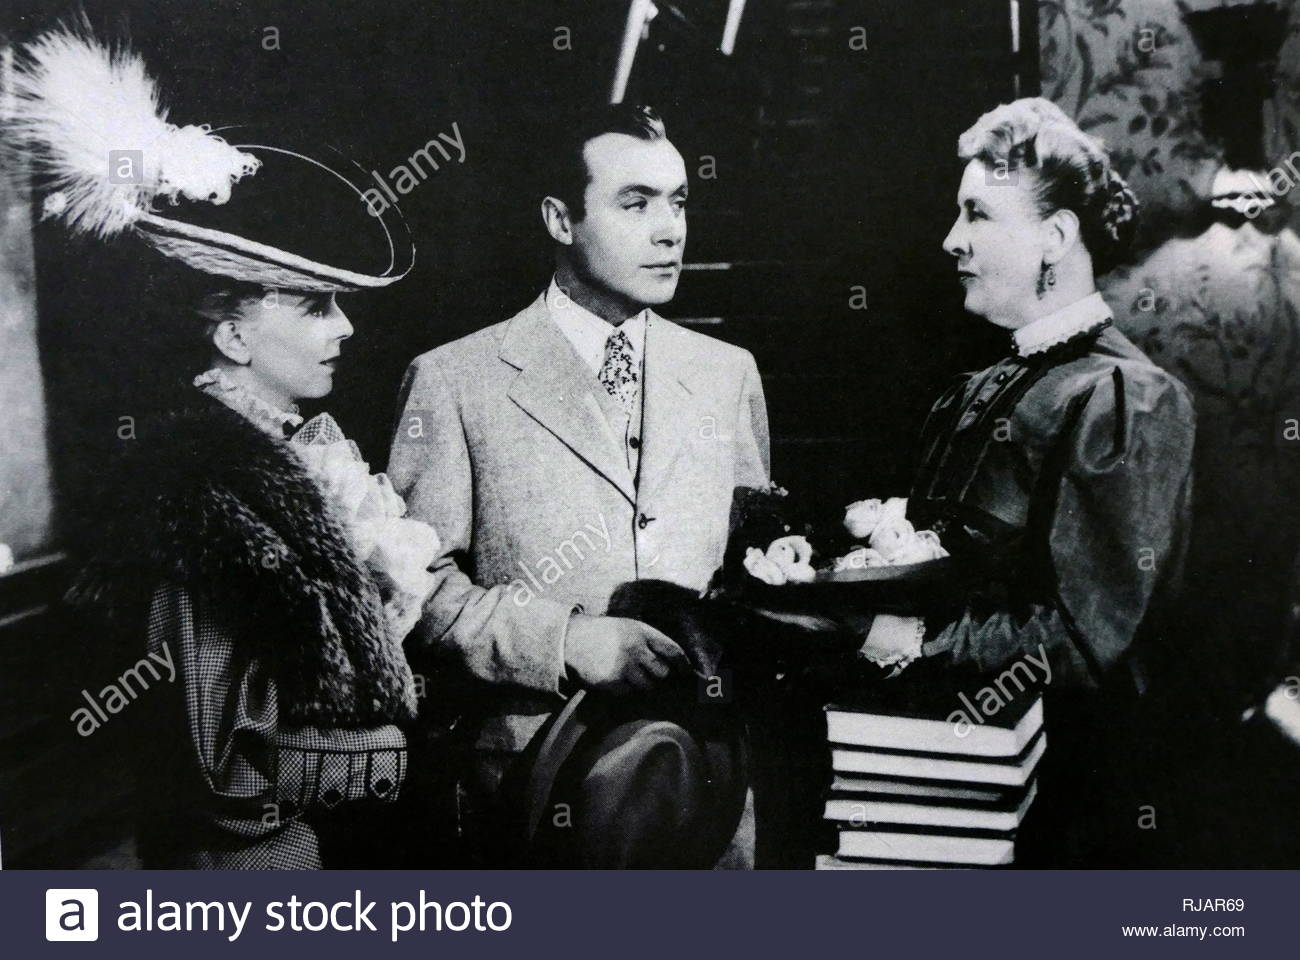 Back Street is a 1941 drama film, directed by Robert Stevenson. The film stars Charles Boyer Centre) and  Margaret Sullavan (Left). The film follows the 1931 Fannie Hurst novel and the 1932 film version very closely, in some cases reproducing the earlier film scene-for-scene. It is a sympathetic tale of an adulterous woman and the man she loved. Charles Boyer (1899 - 1978); a French actor who appeared in more than 80 films. he found his success in American films during the 1930s - Stock Image